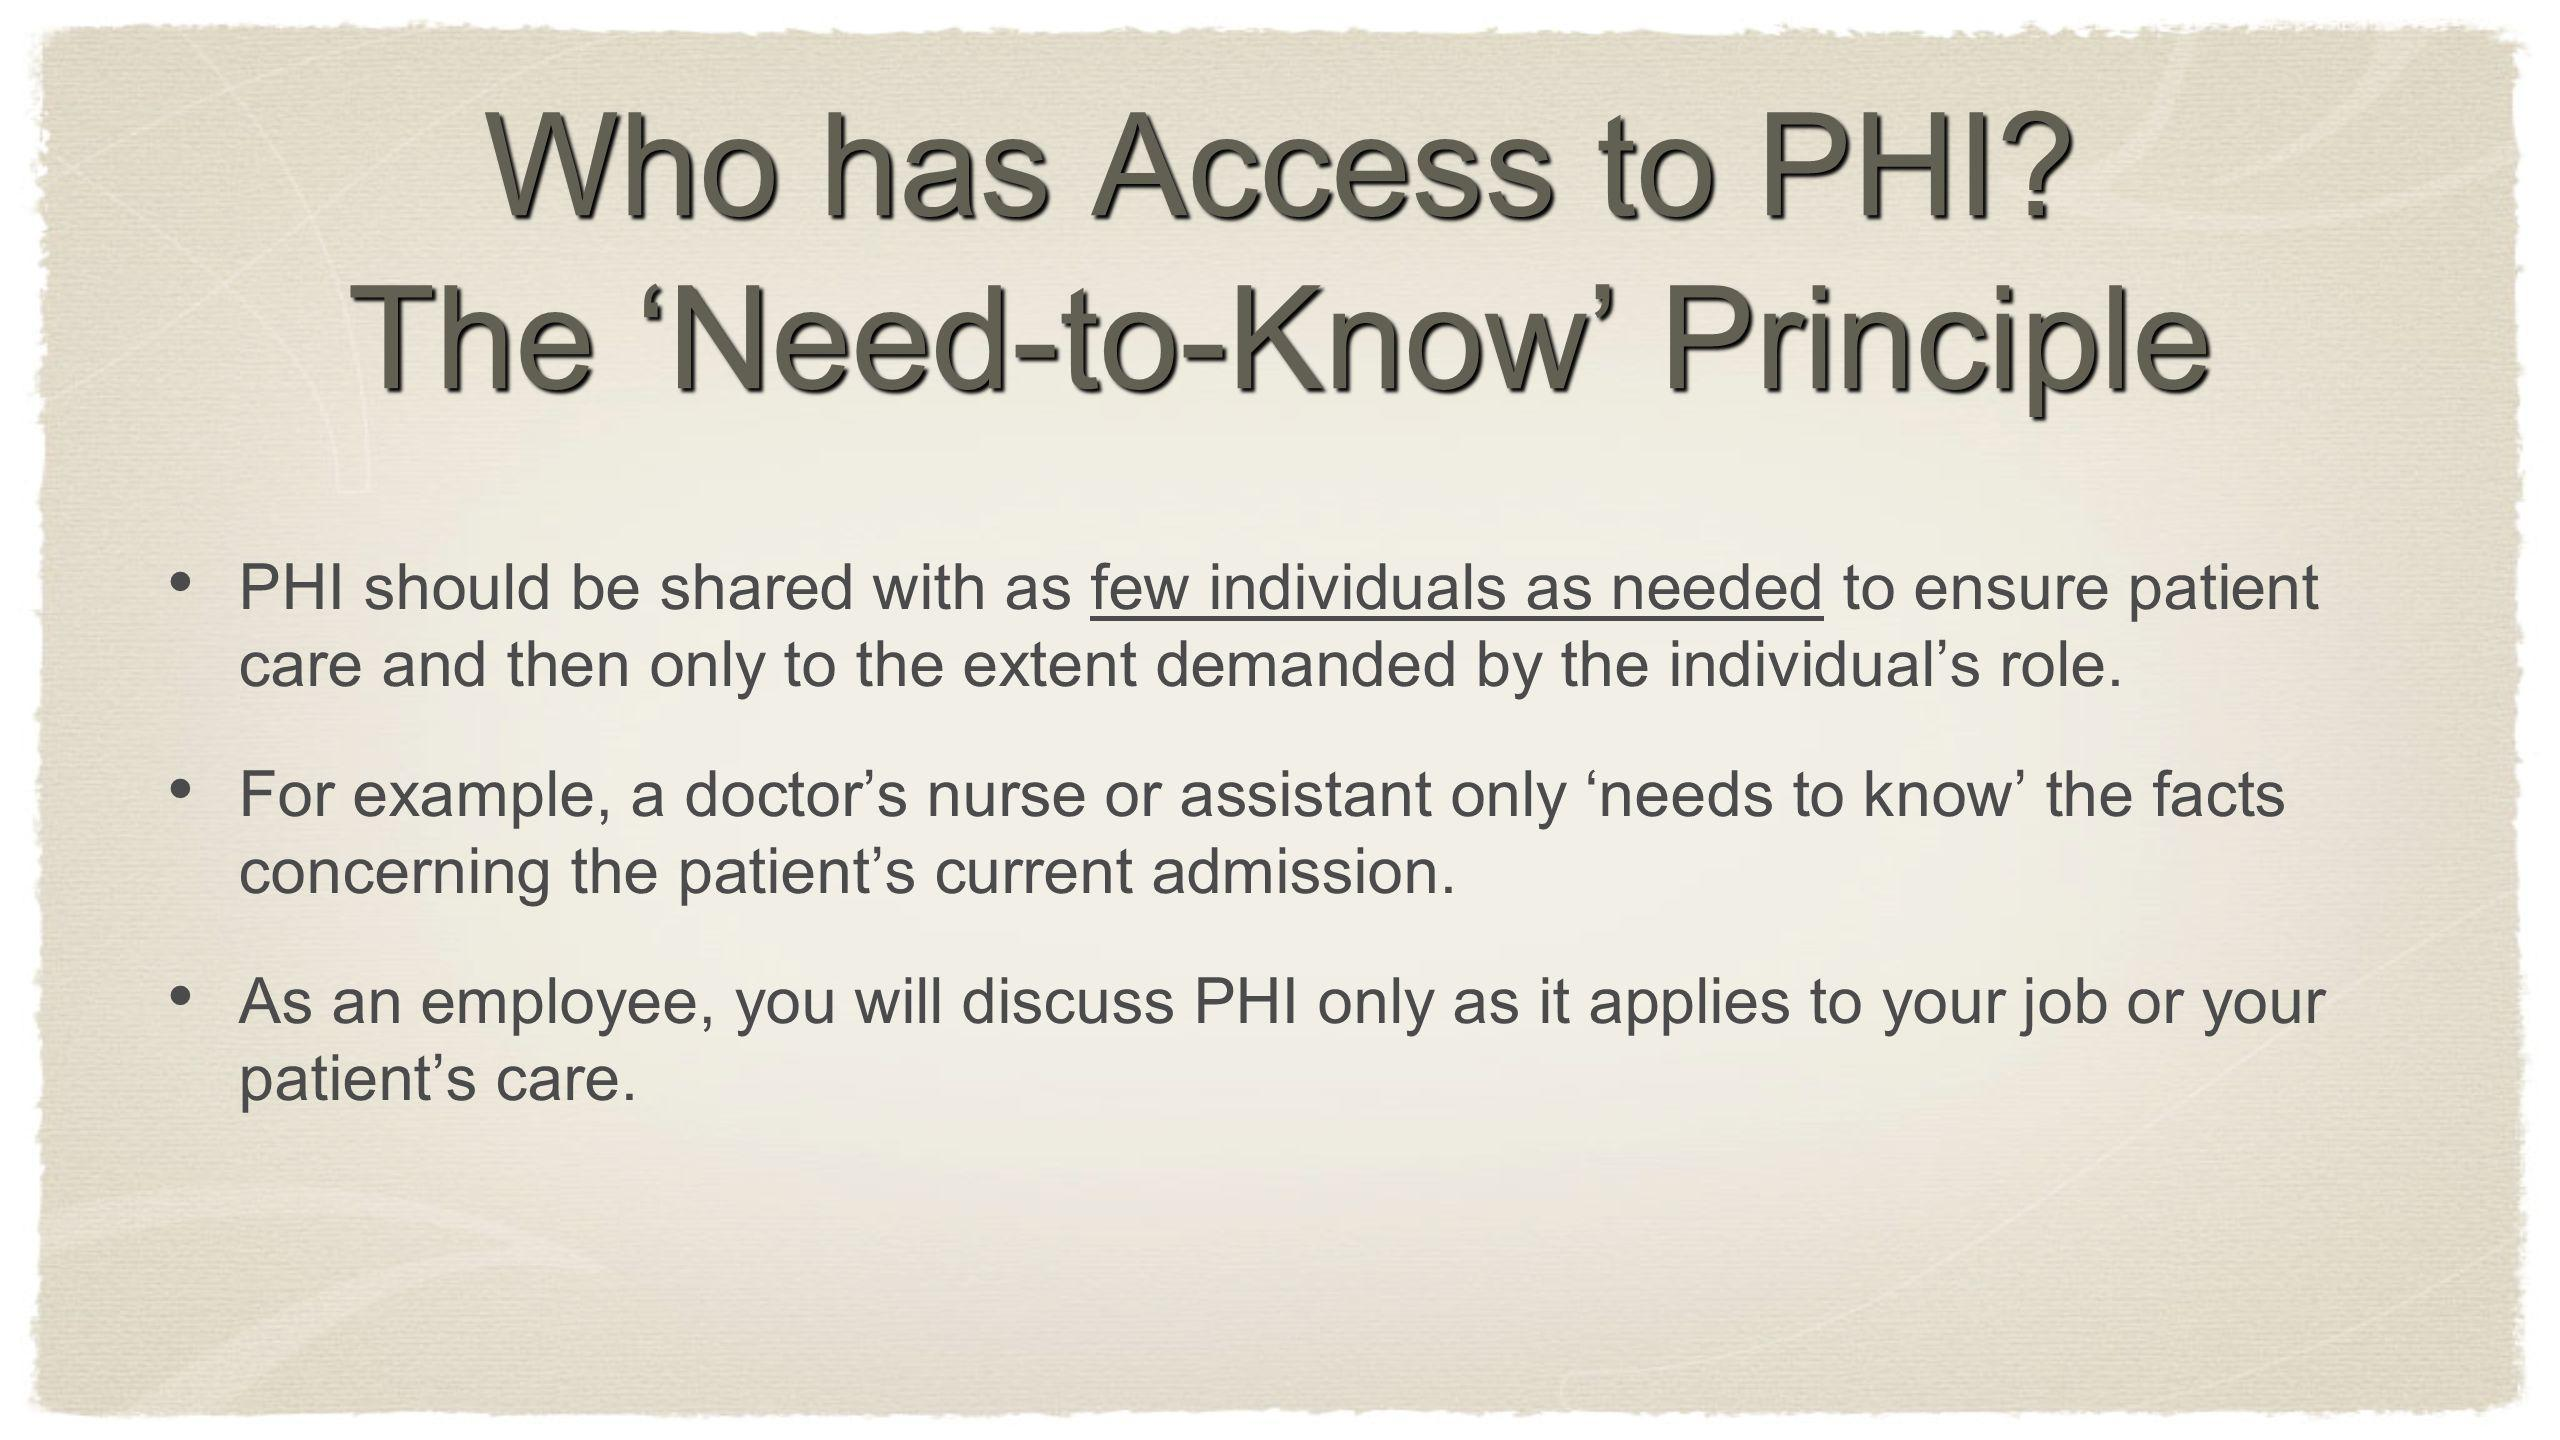 Who has Access to PHI The 'Need-to-Know' Principle